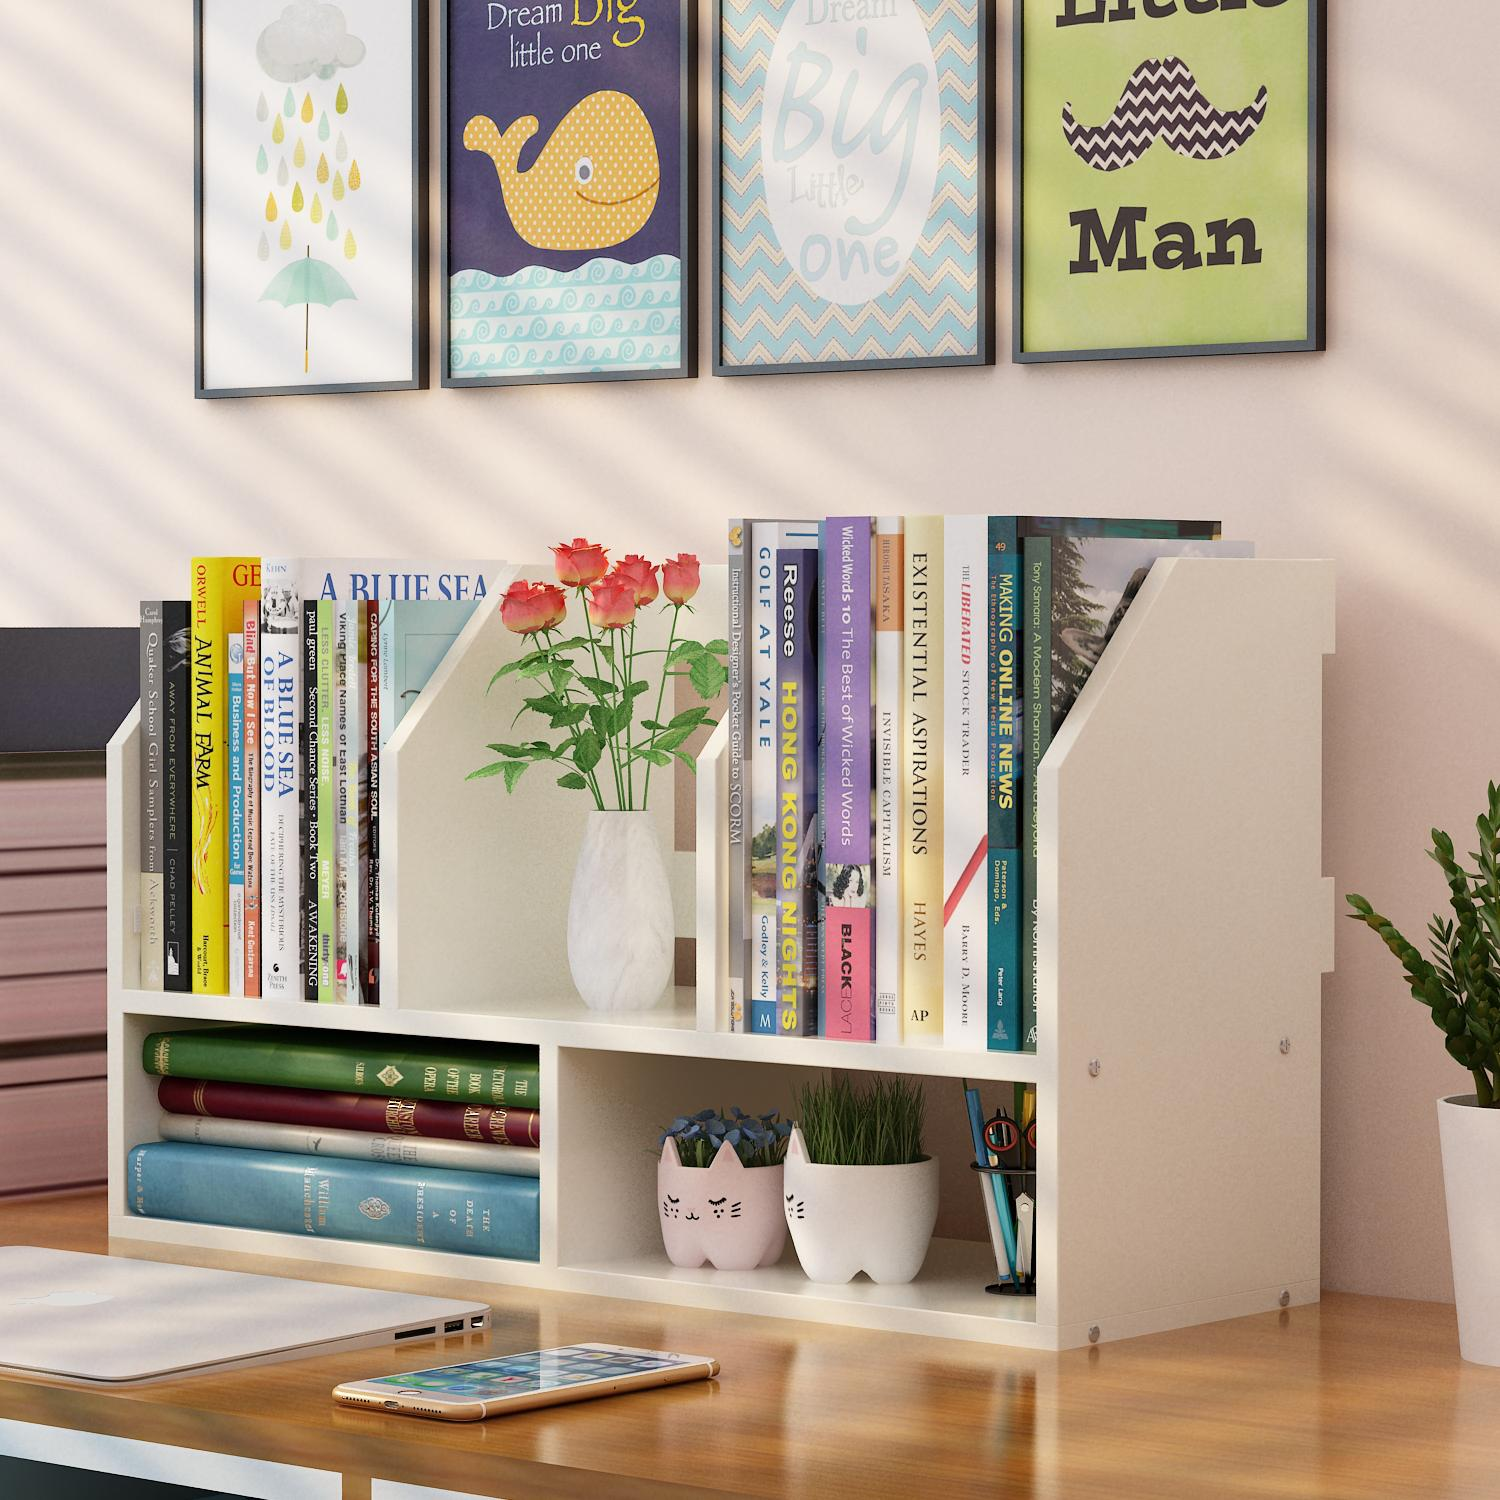 Creative Office Reception Design Us 14 9 Louis Fashion Bookcases Modern Simple Desktop Student Children S Mini Table Storage And Creative Office Reception In Bookcases From